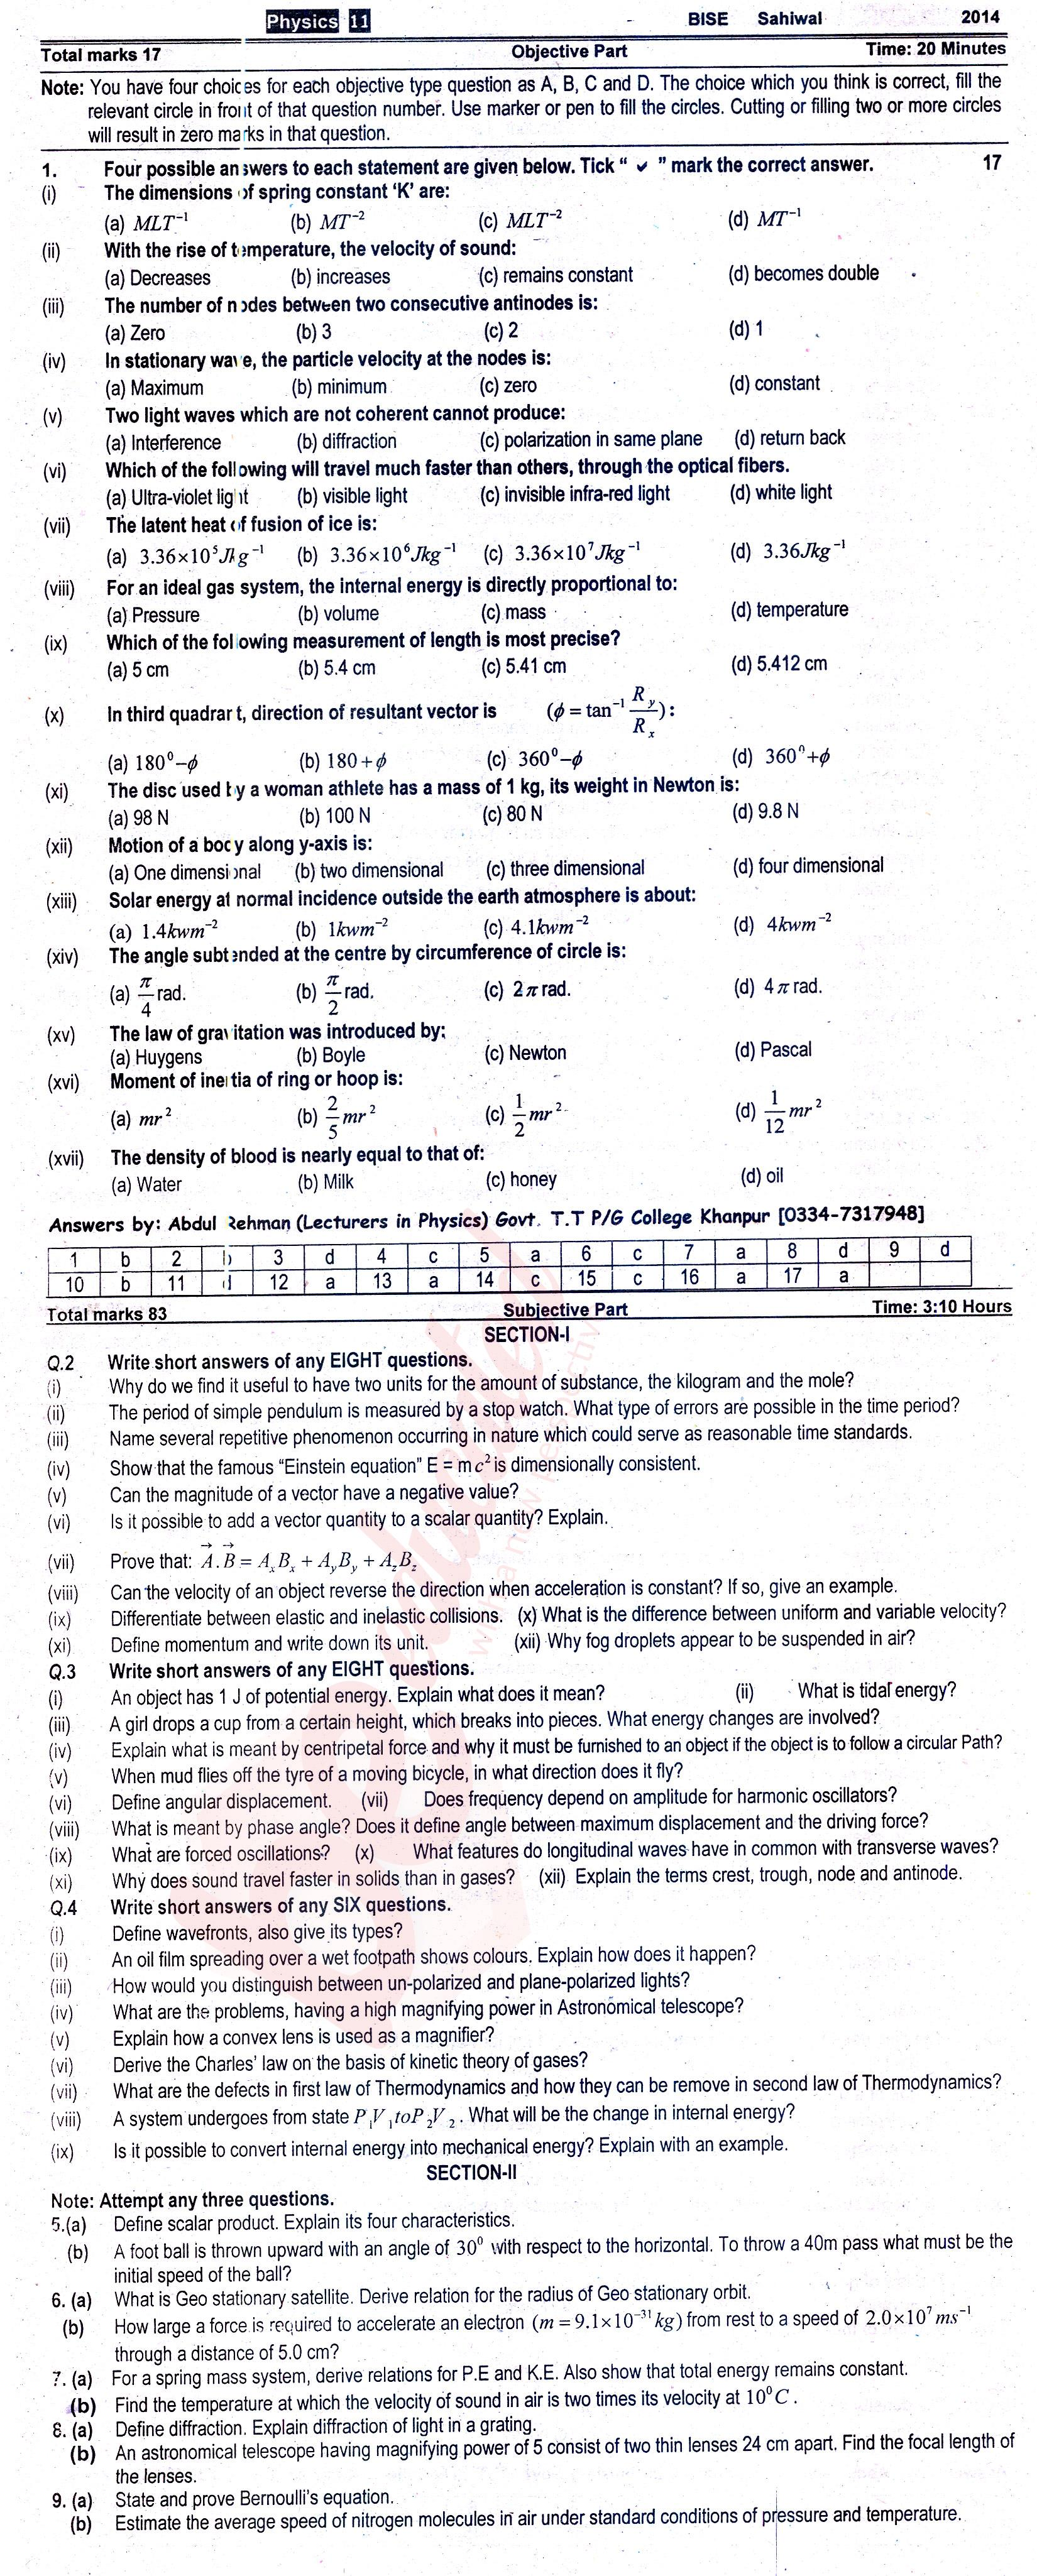 Physics Subject BISE Sahiwal 11th Class FSC Part 1 Past